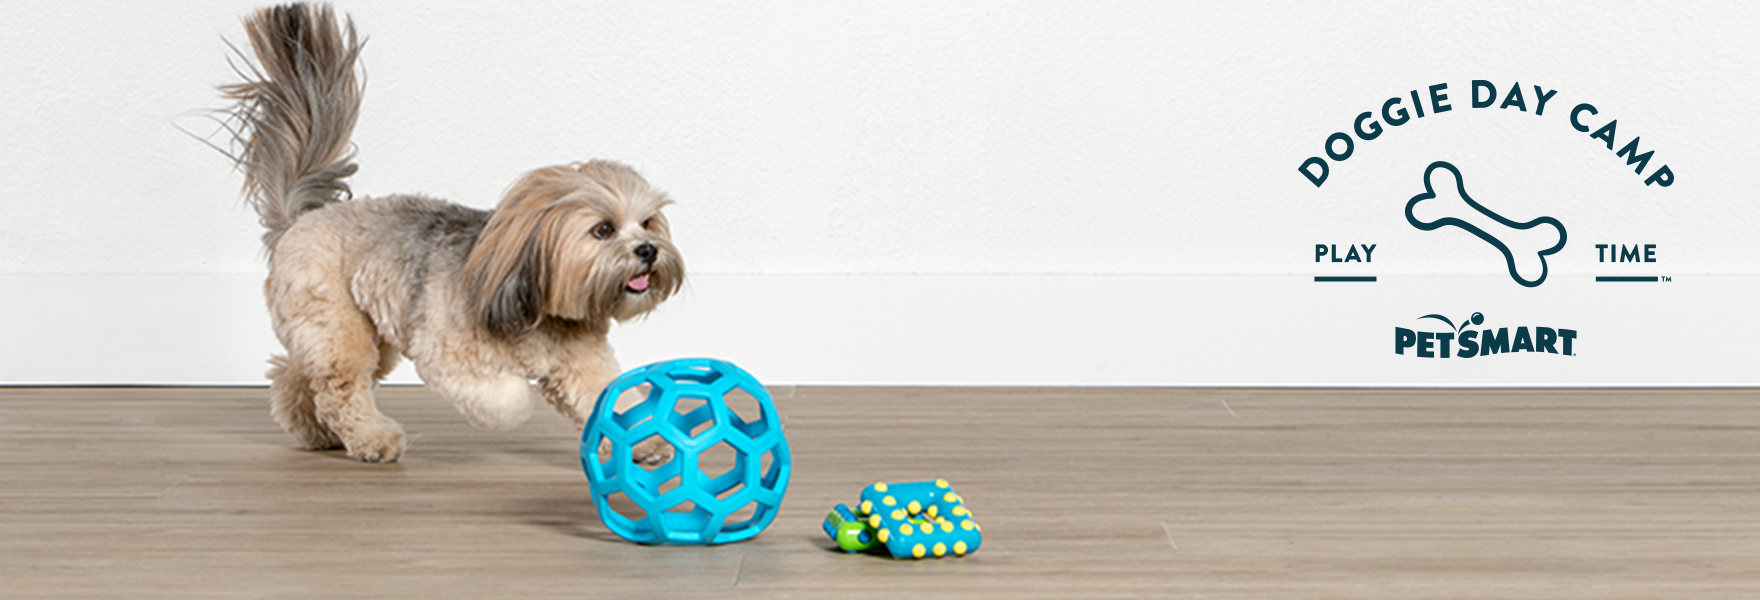 dog play with toys